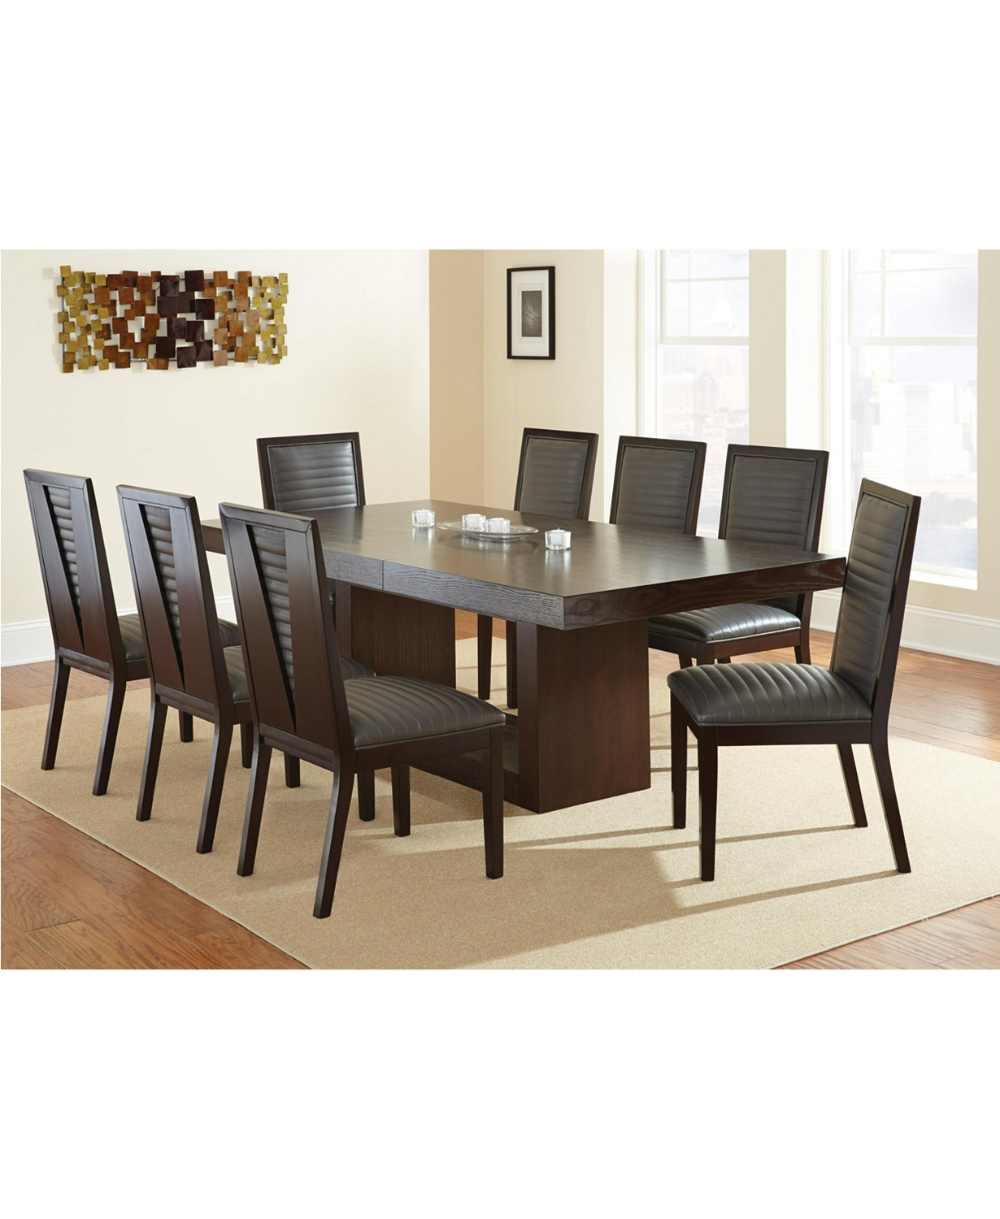 Furniture Anthony Dining Room Set Collection Reviews Furniture Macy S Dining Room Set Furniture Dining Table